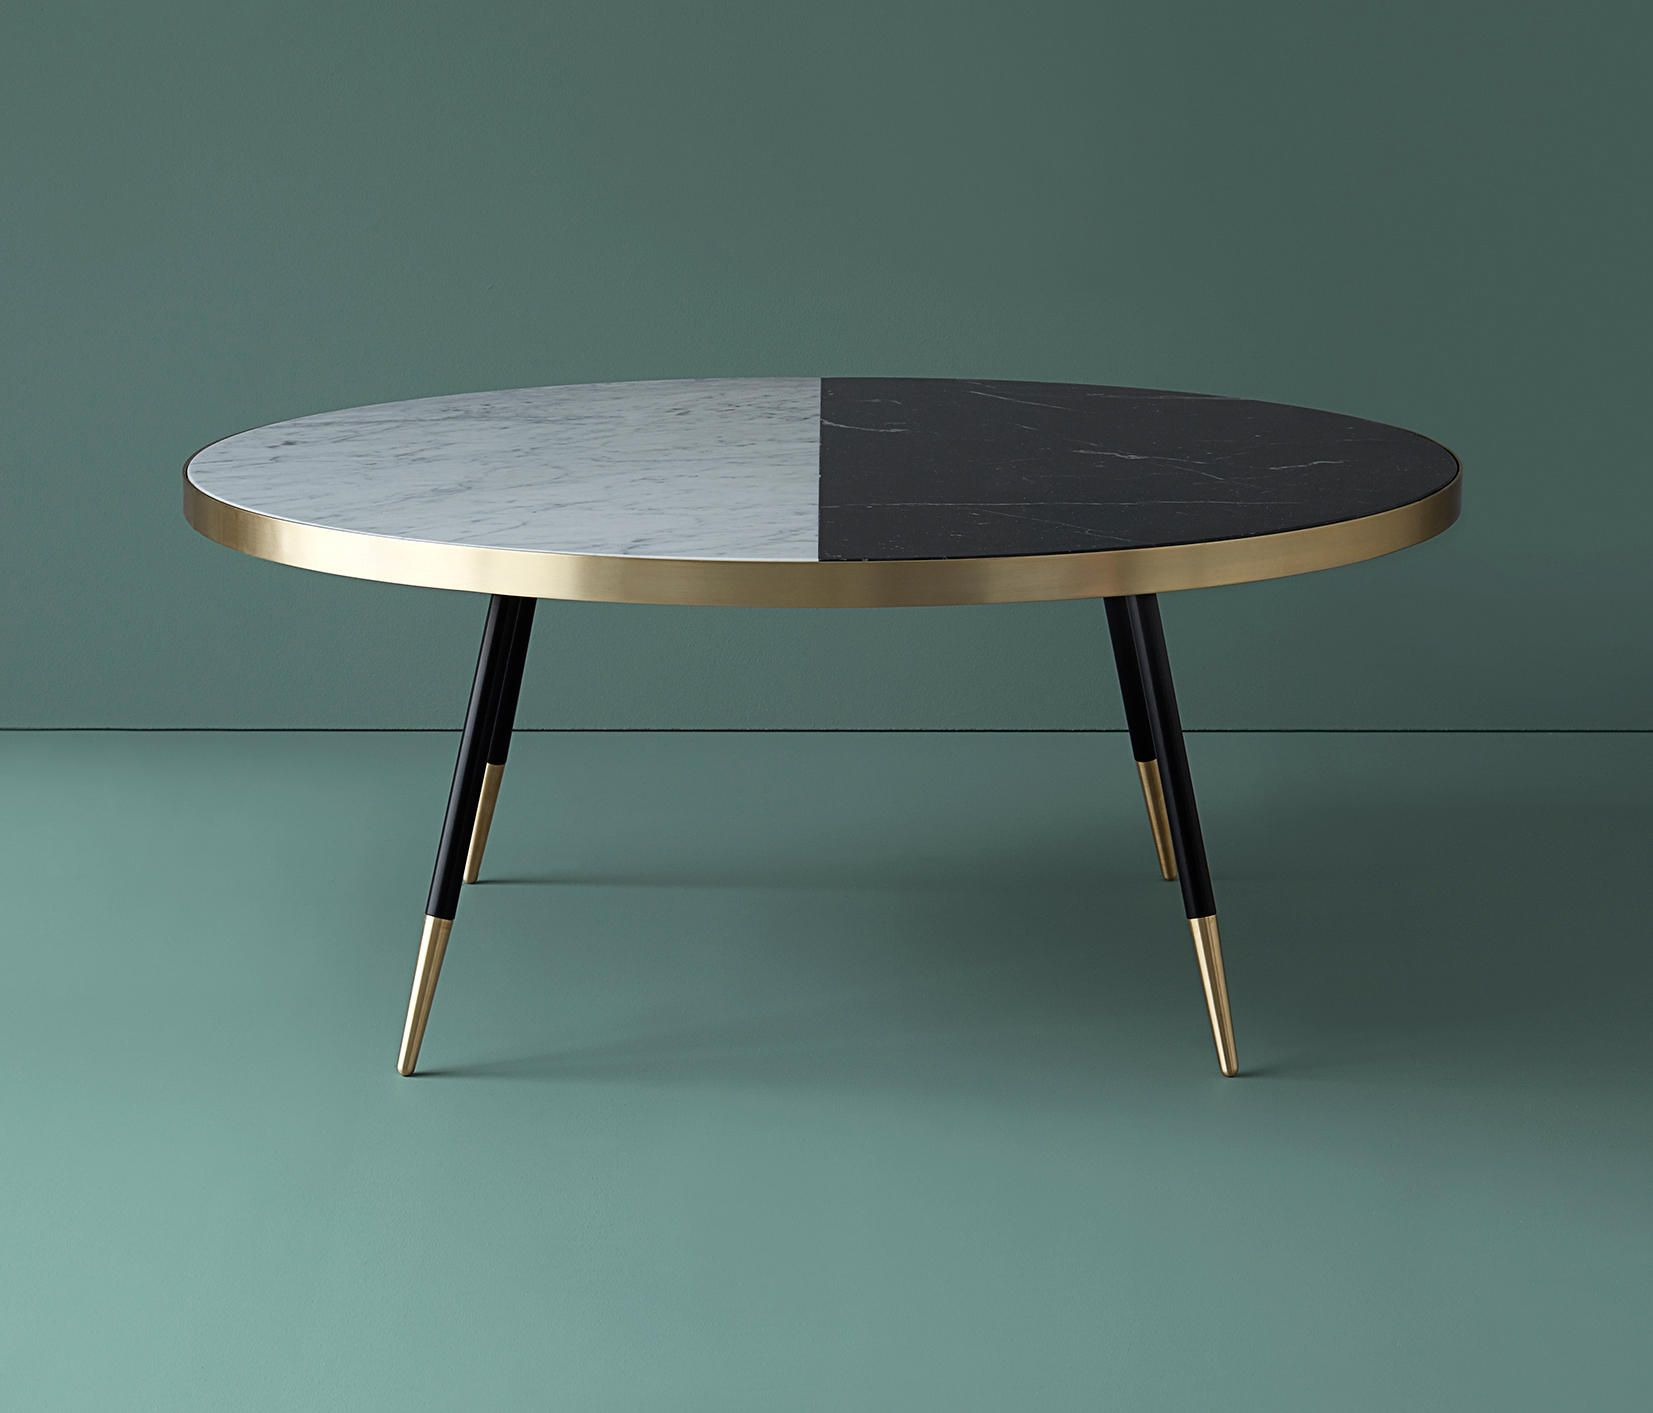 Band Marble Coffee Table Lounge Tables By Bethan Gray Architonic Wohnzimmertische Coole Couchtische Couchtisch Design